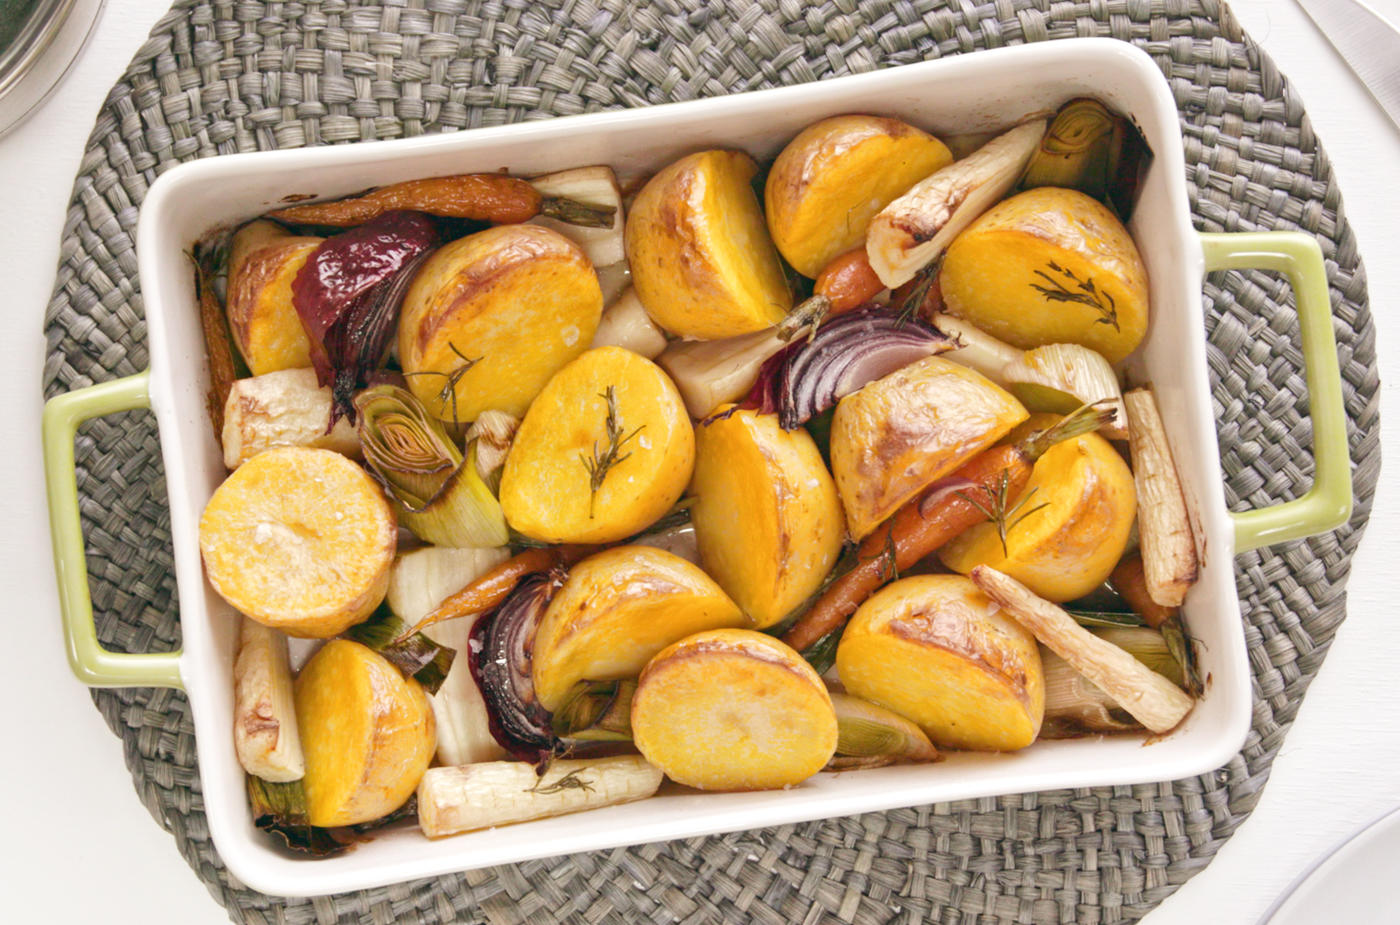 Roasted Inca Gold potatoes, carrot, leek, & red onion tray bake